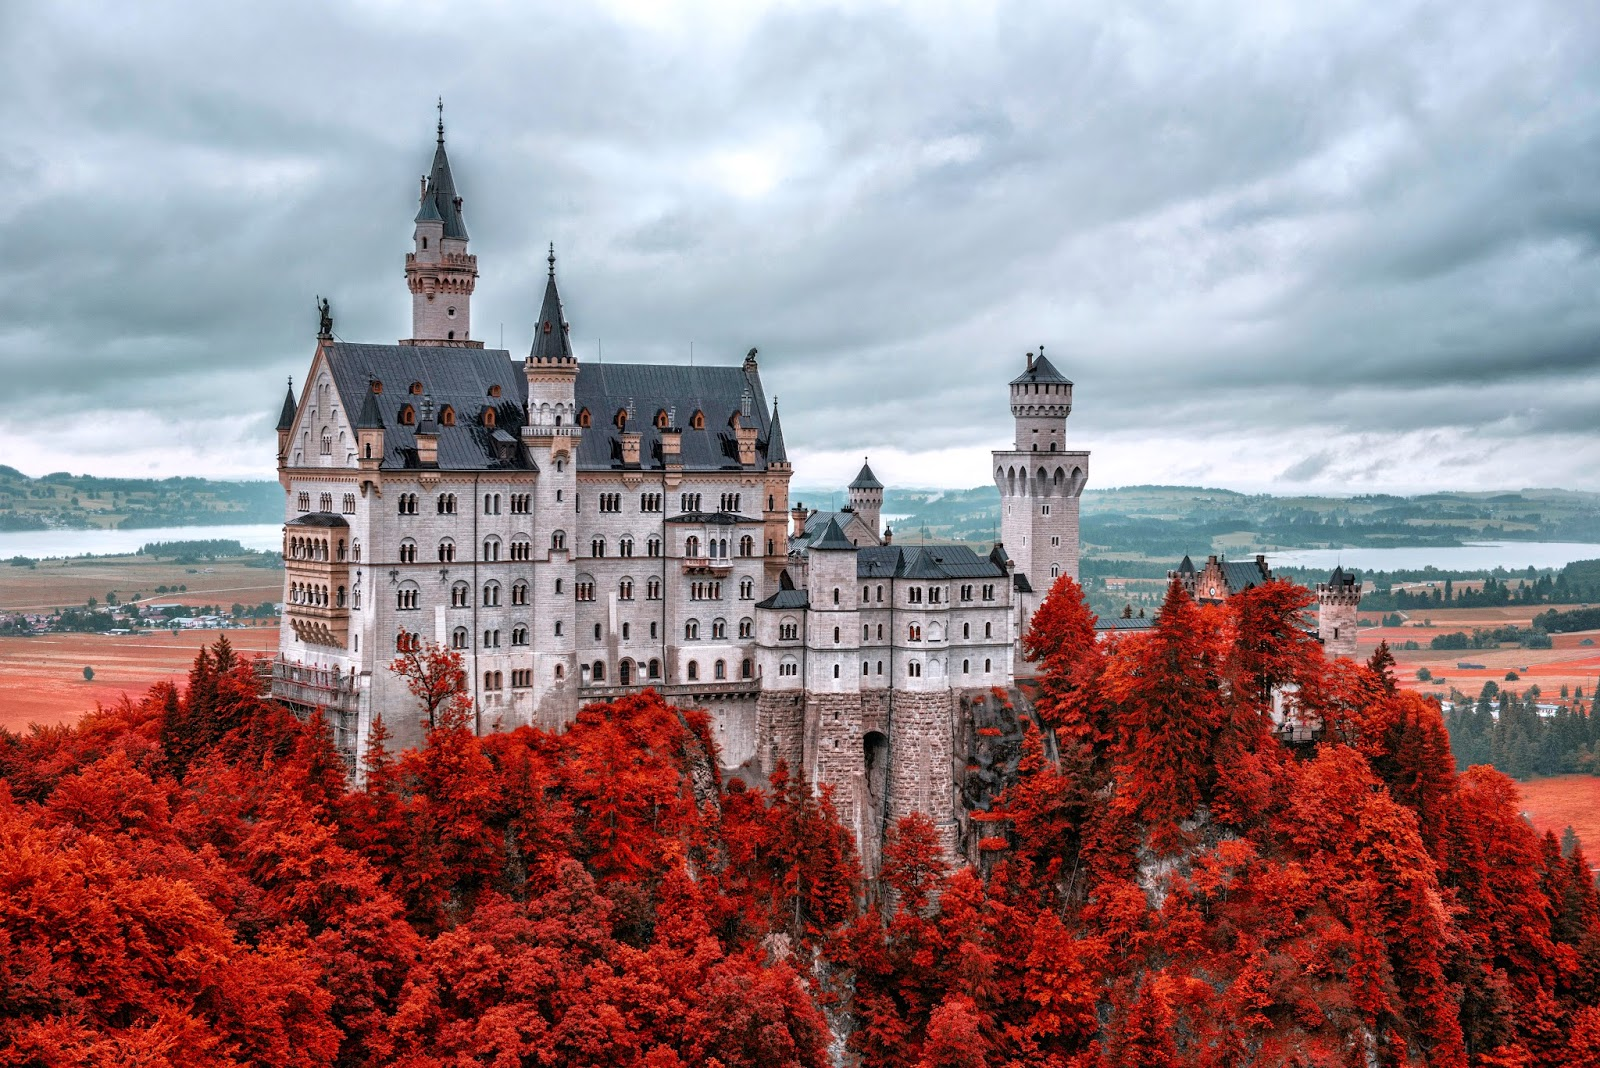 8 Neuschwanstein Castle Wallpaper HD